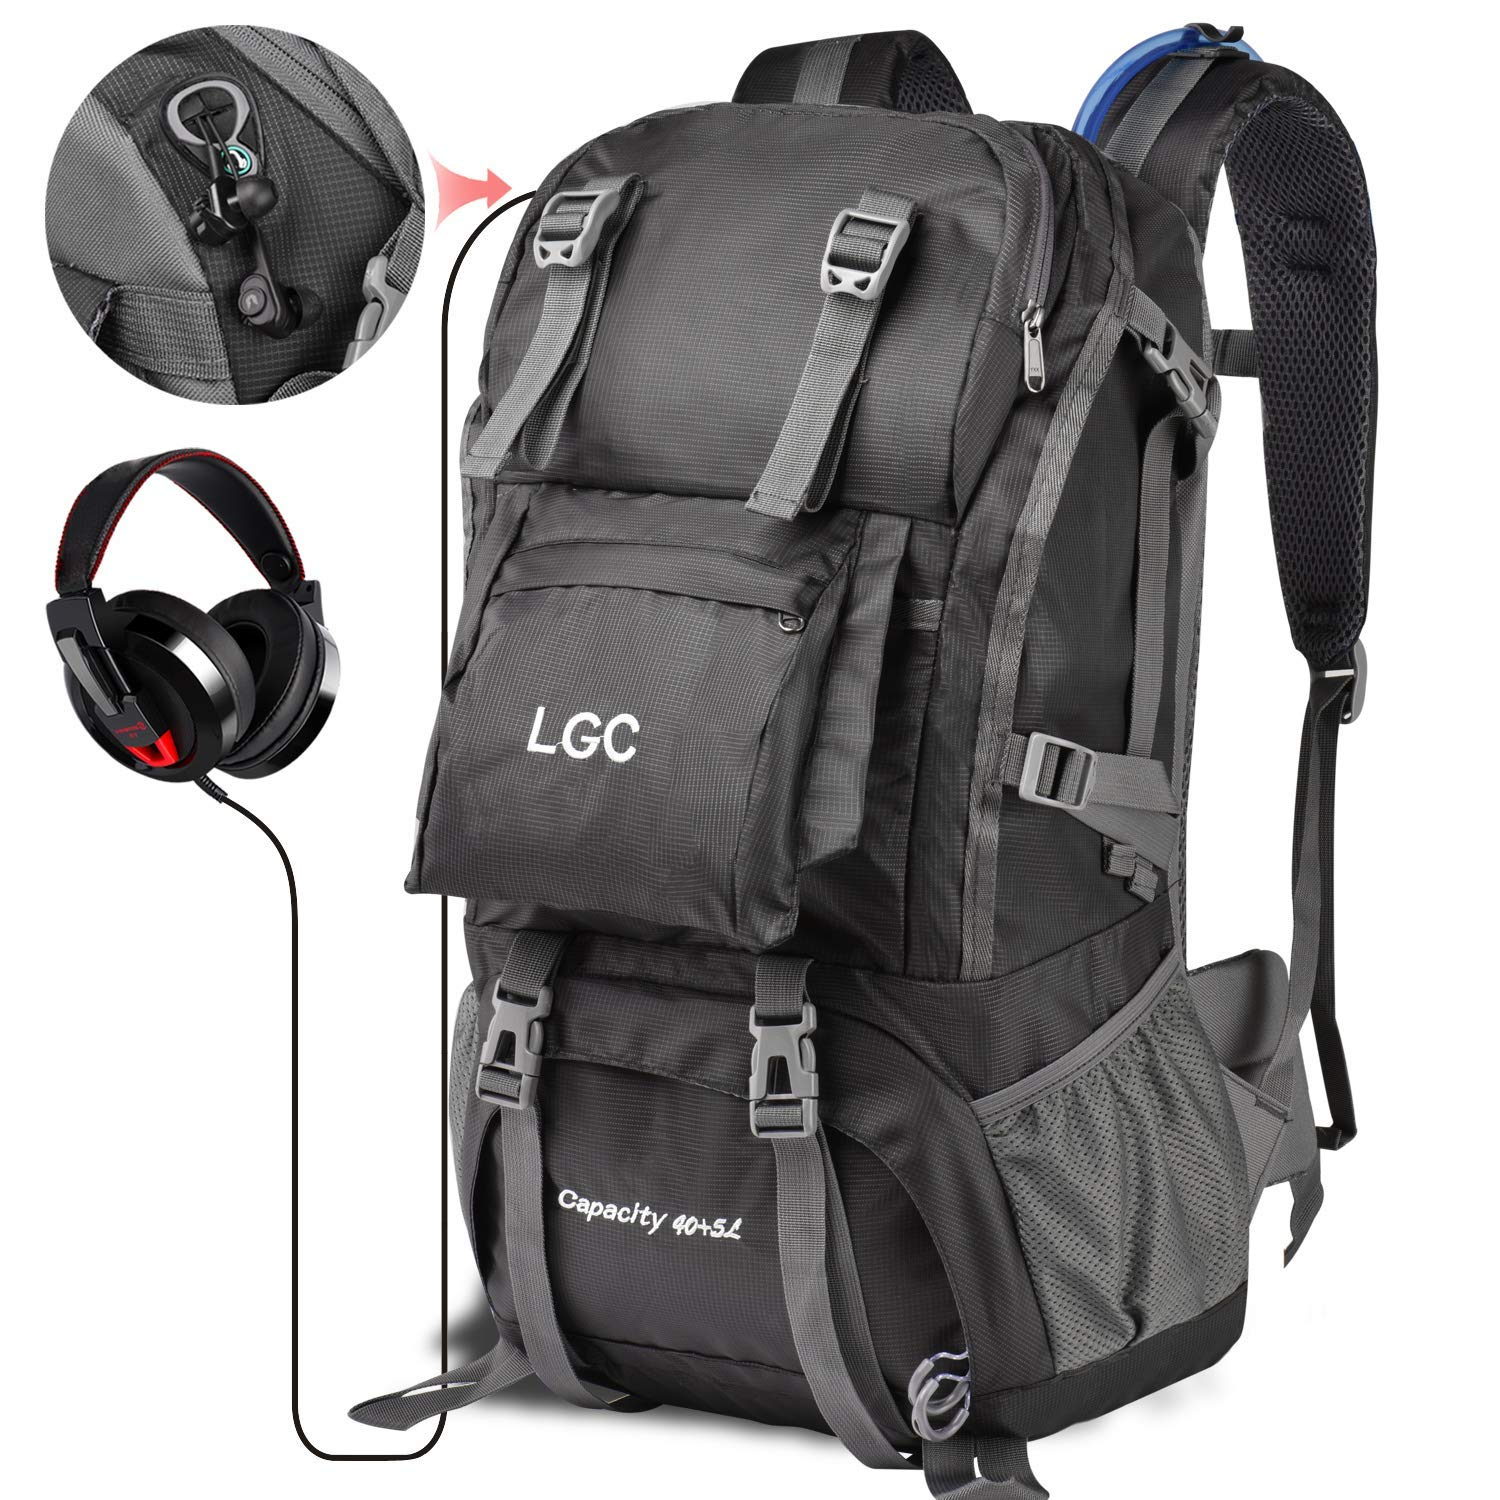 LGC Products Travel Backpack,40L Waterproof Hiking Backpack for Men & Women,Camping Backpack with Headphone Interface & Rain Cover for Hiking,Traveling & Camping